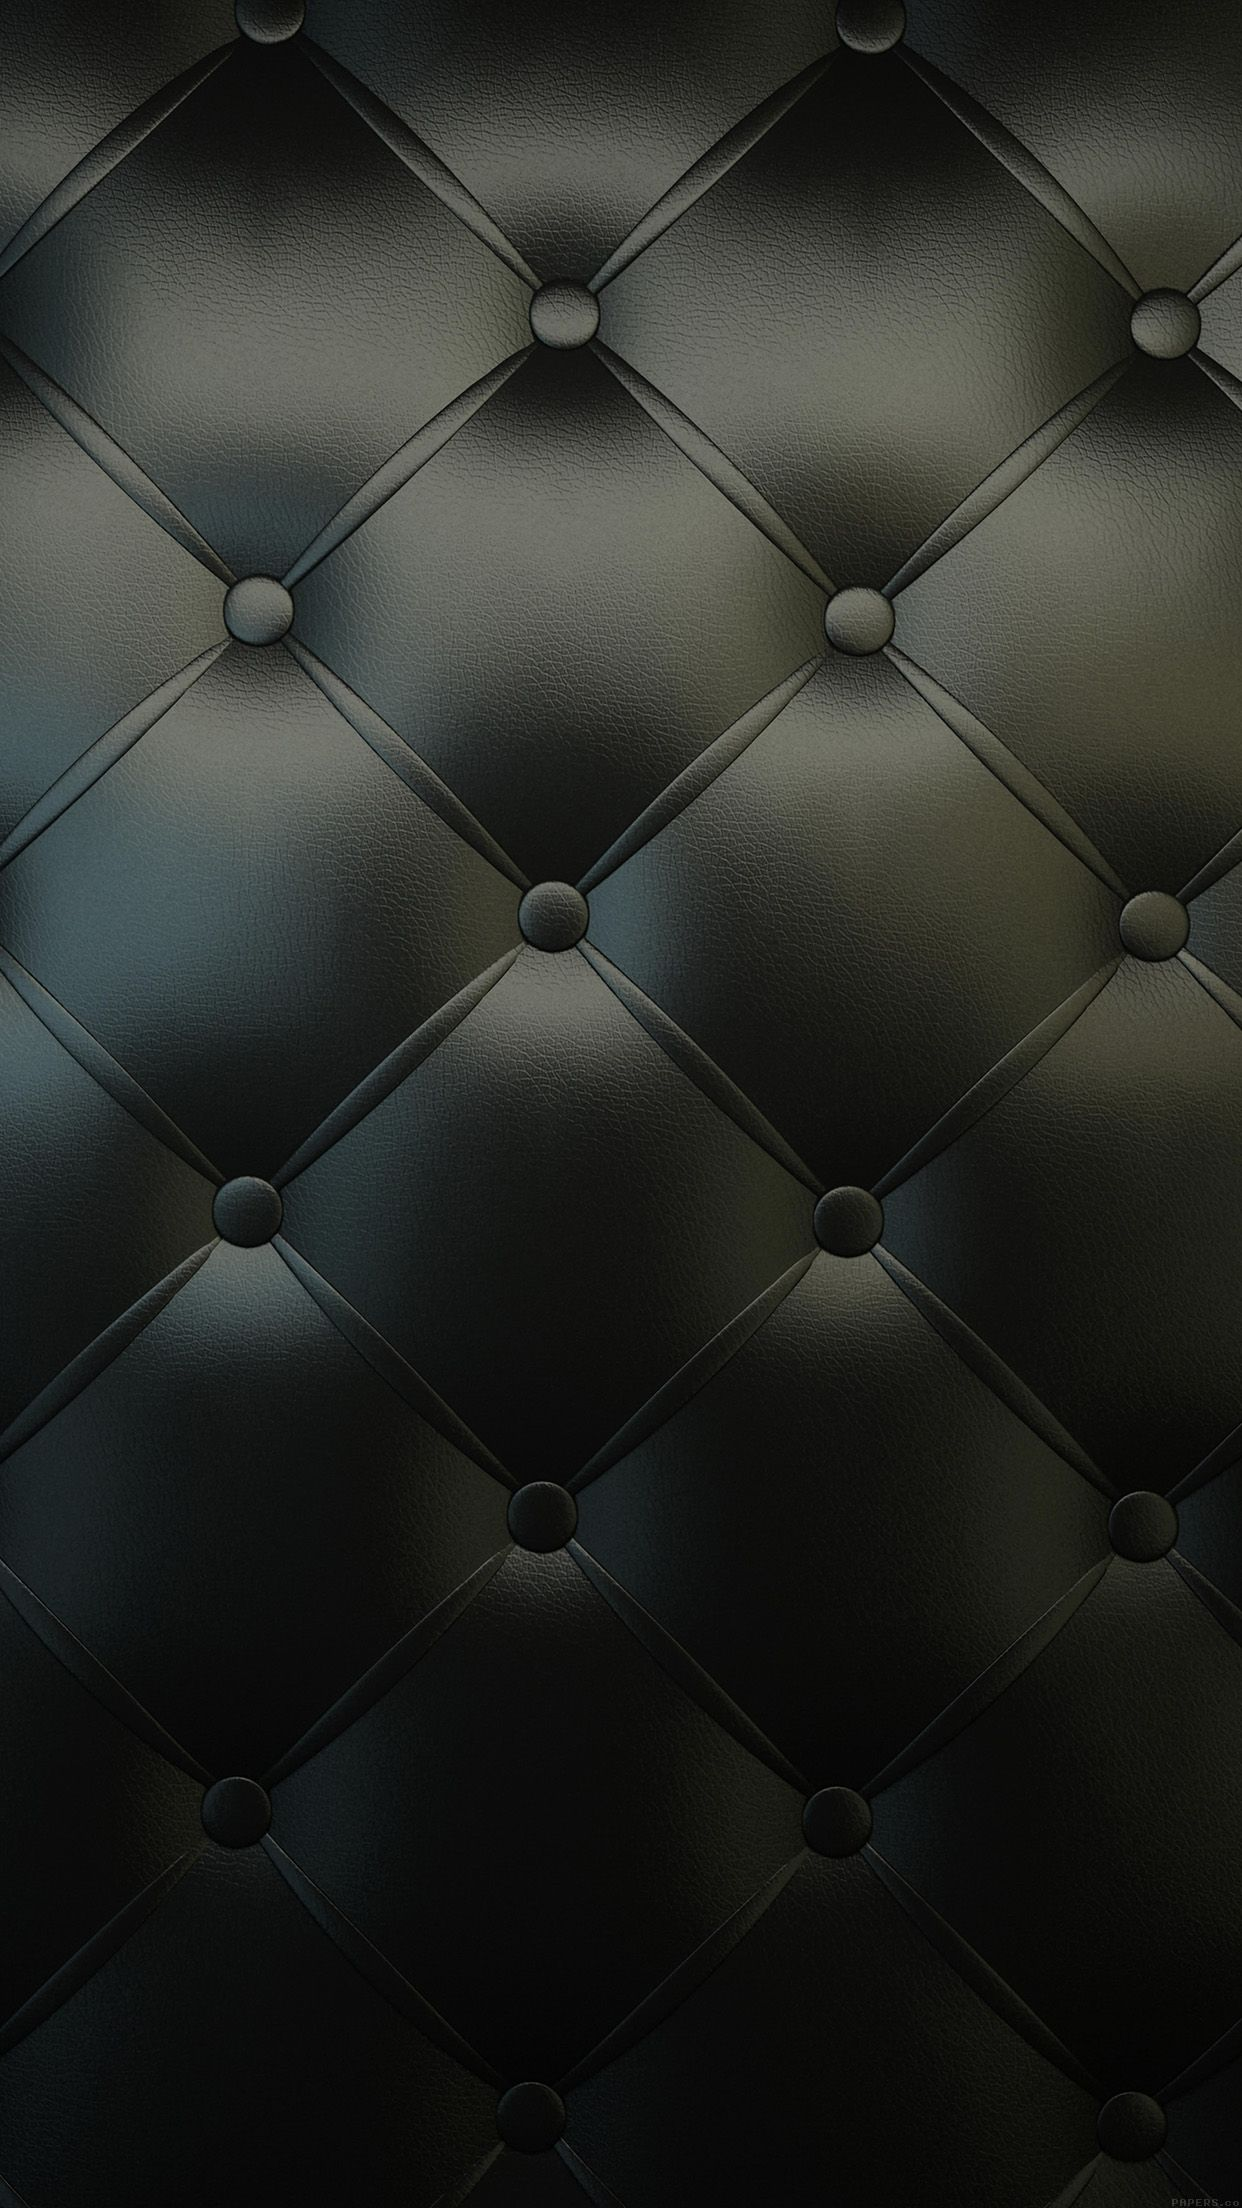 Dark Chesterfield Sofa Pattern Iphone 6 Plus Hd Wallpaper Black